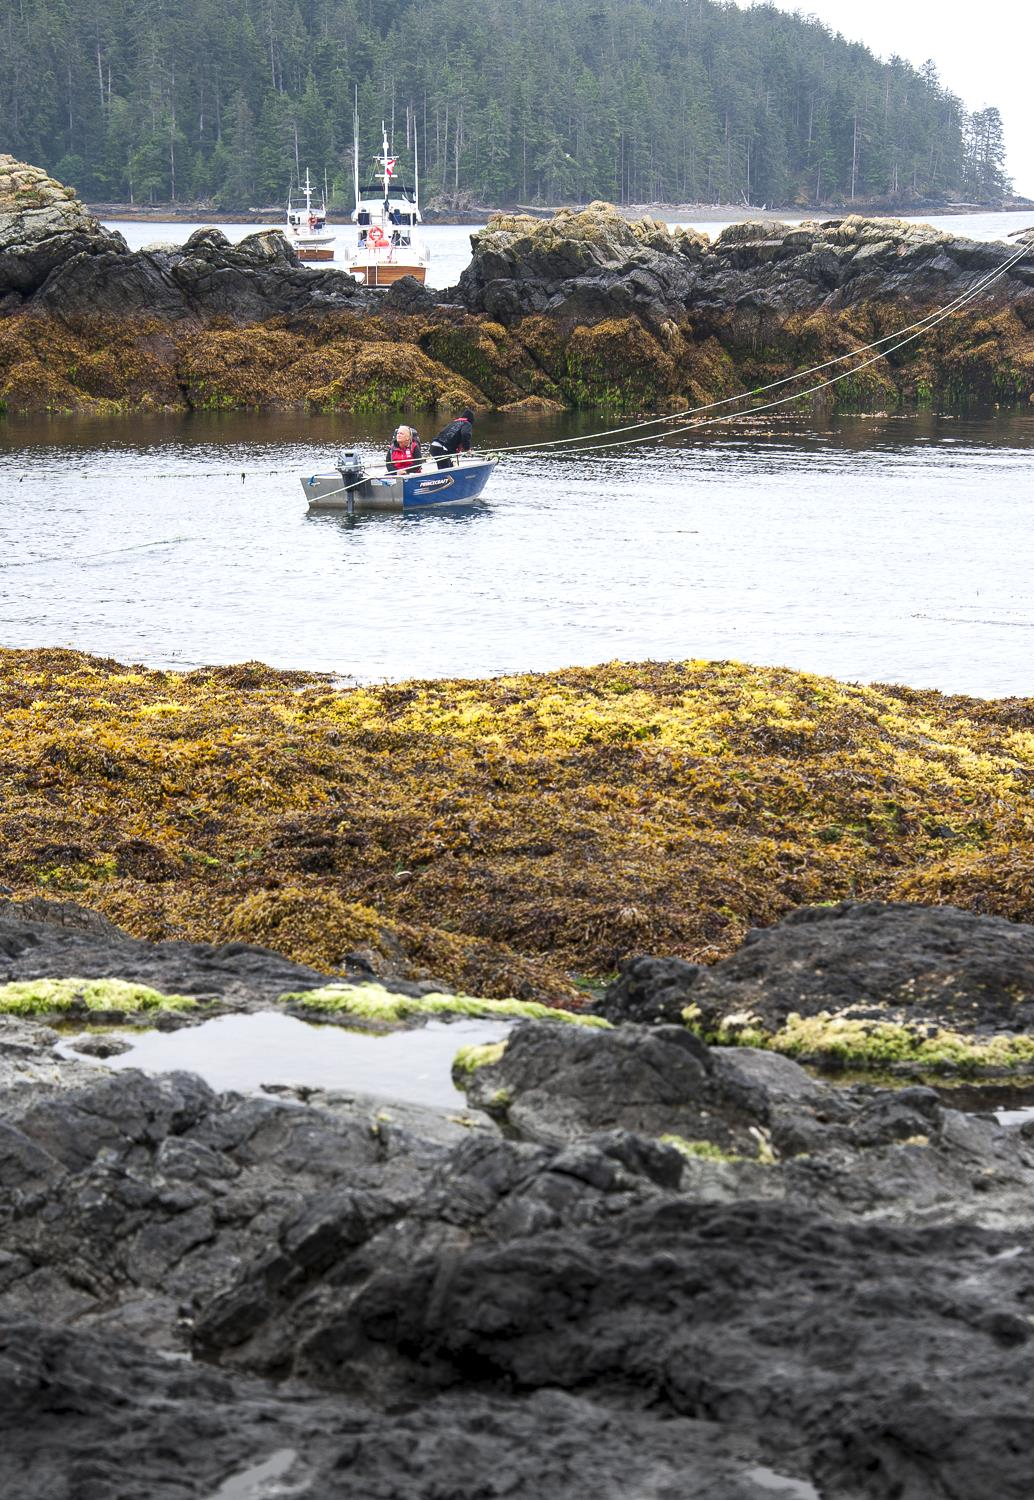 The Watch Keepers bring in supplies from the supply boat in the protected bay